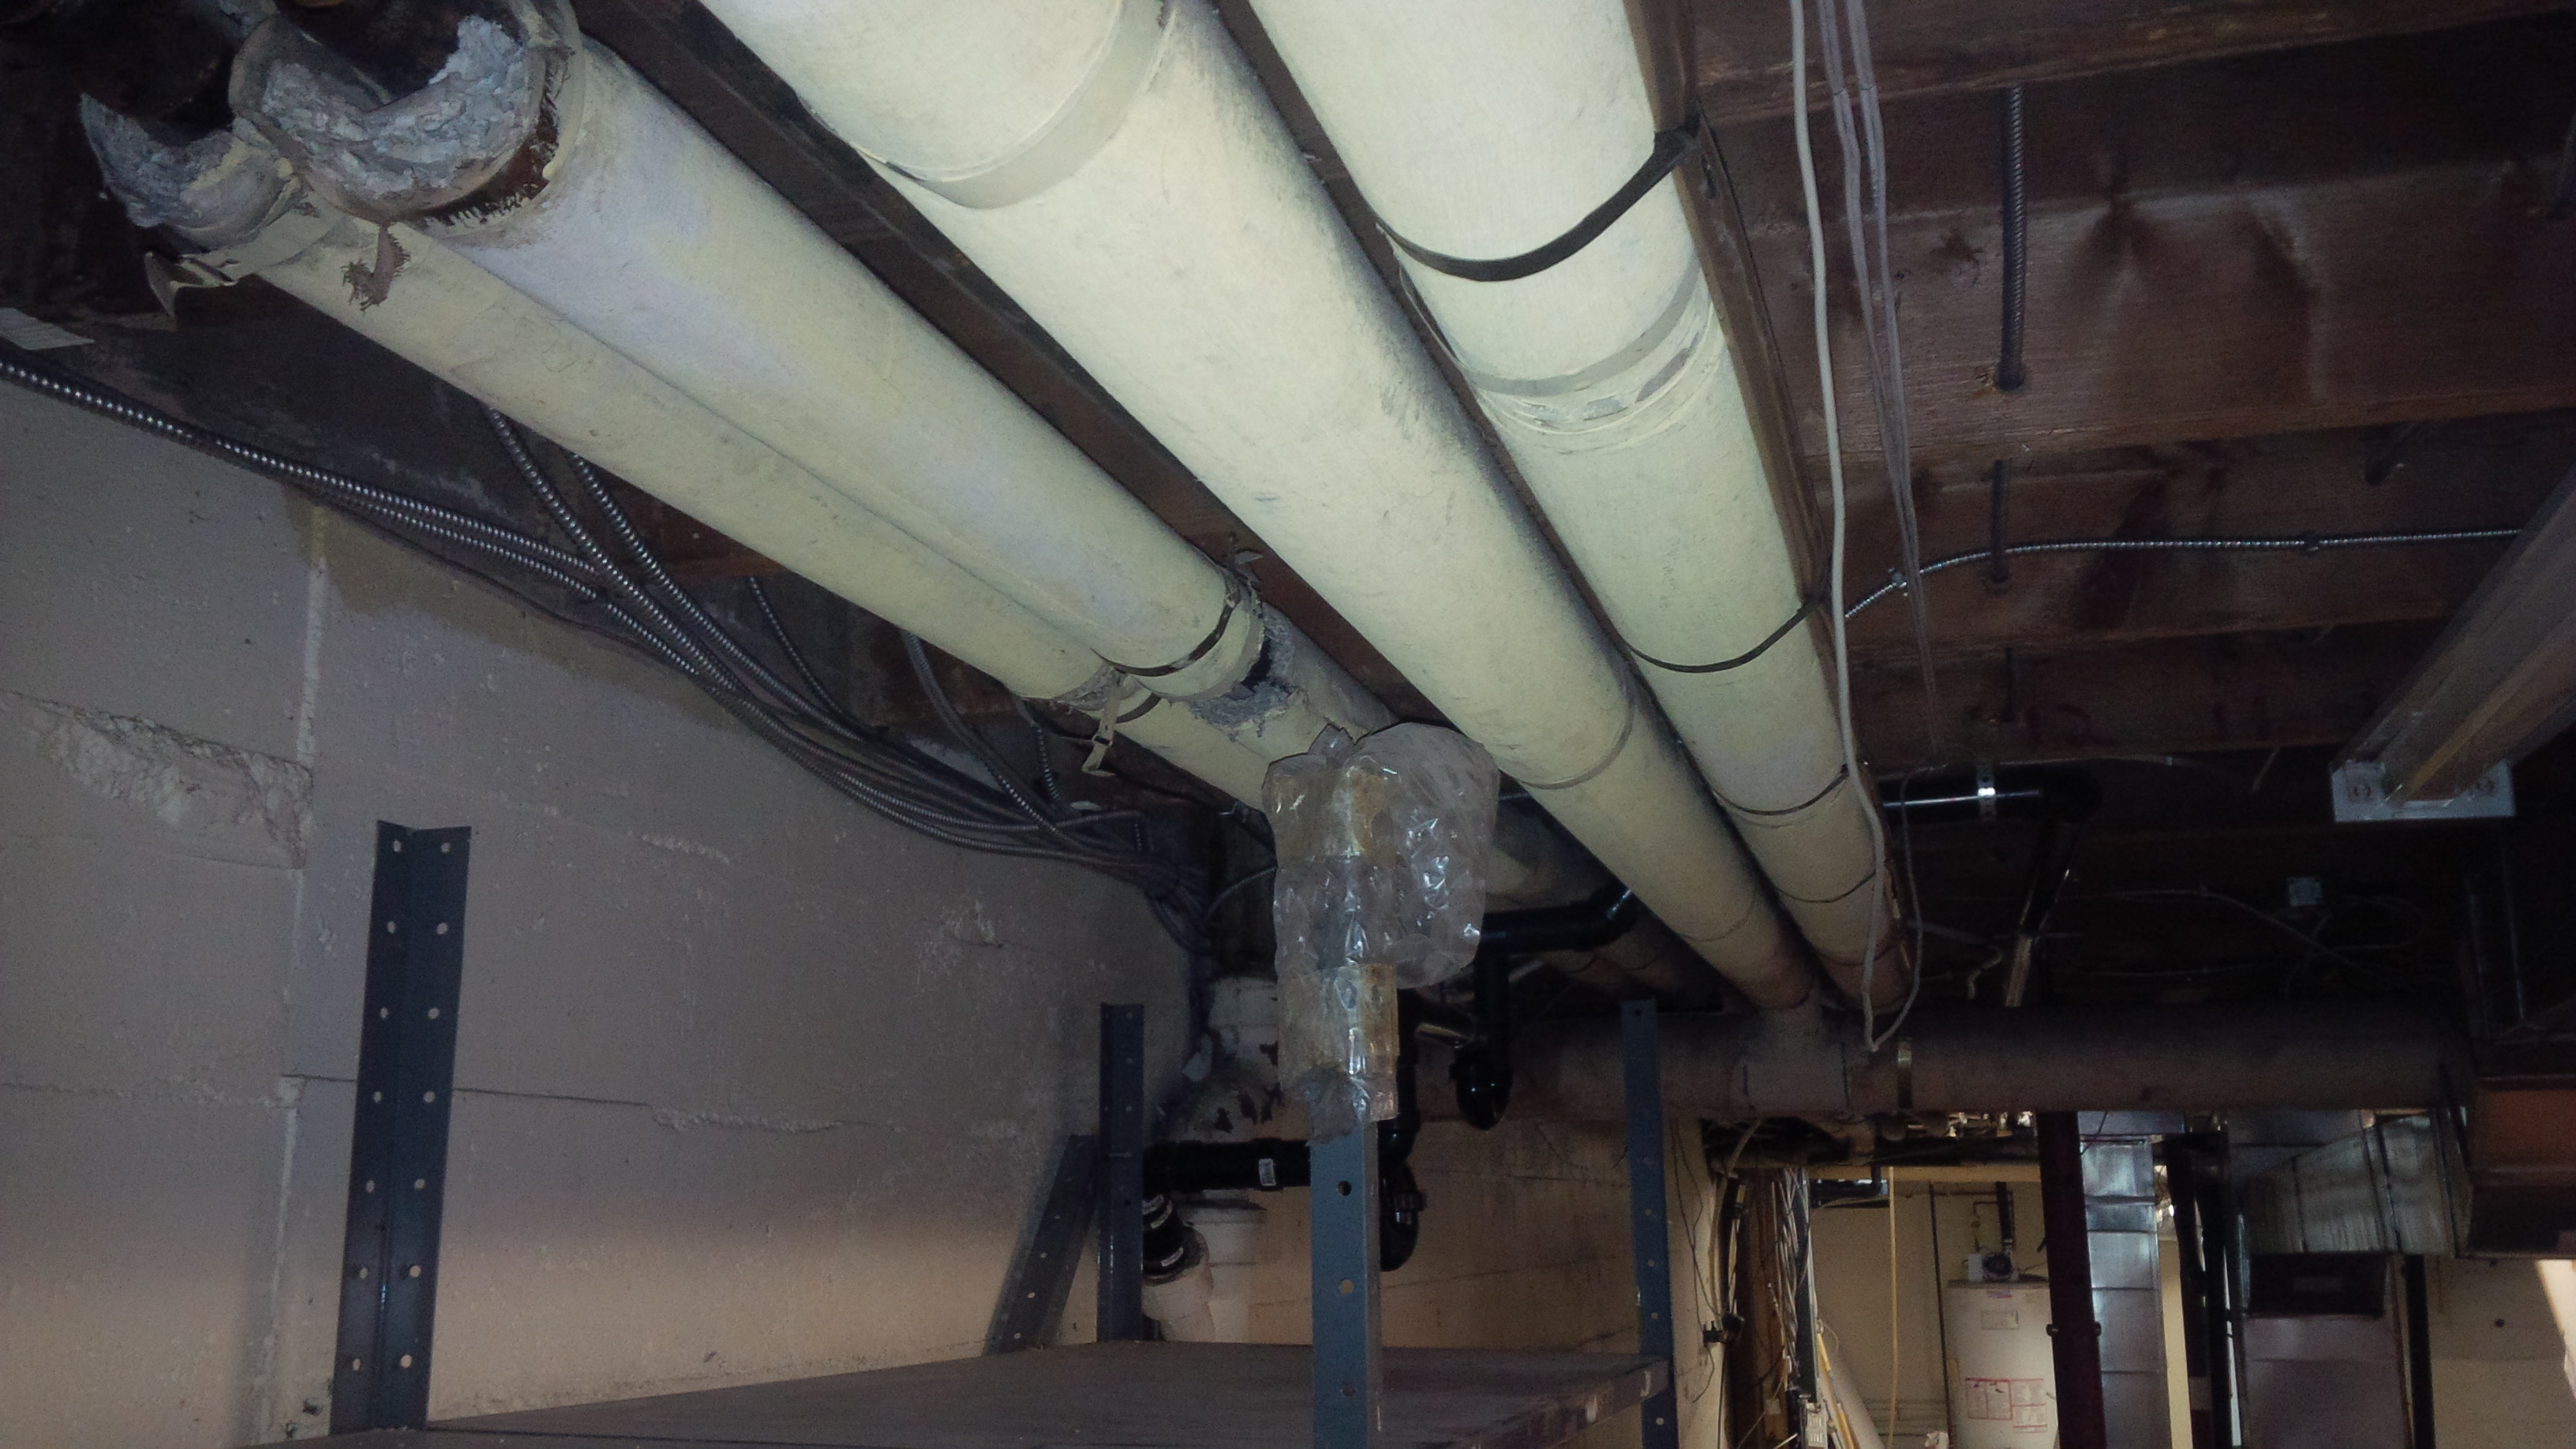 Asbestos Pipe Wrap Elbows, Asbestos Removal, Asbestos Remediation, Asbestos Services,